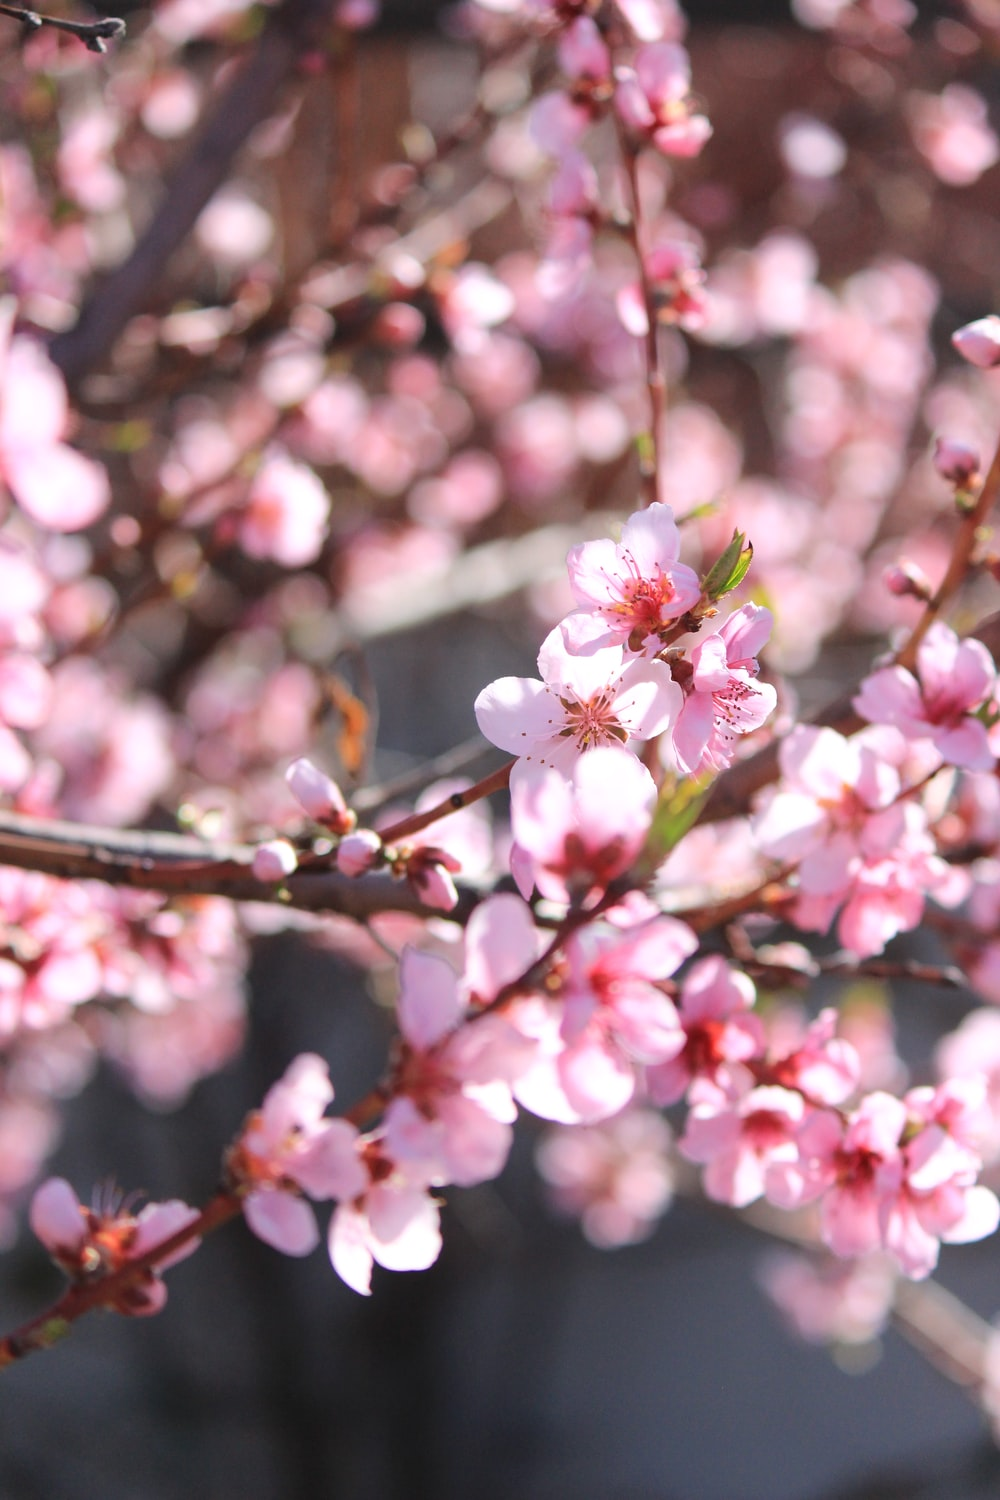 Sunlight Tree Flowers And Blossom Hd Photo By Jessica Fadel